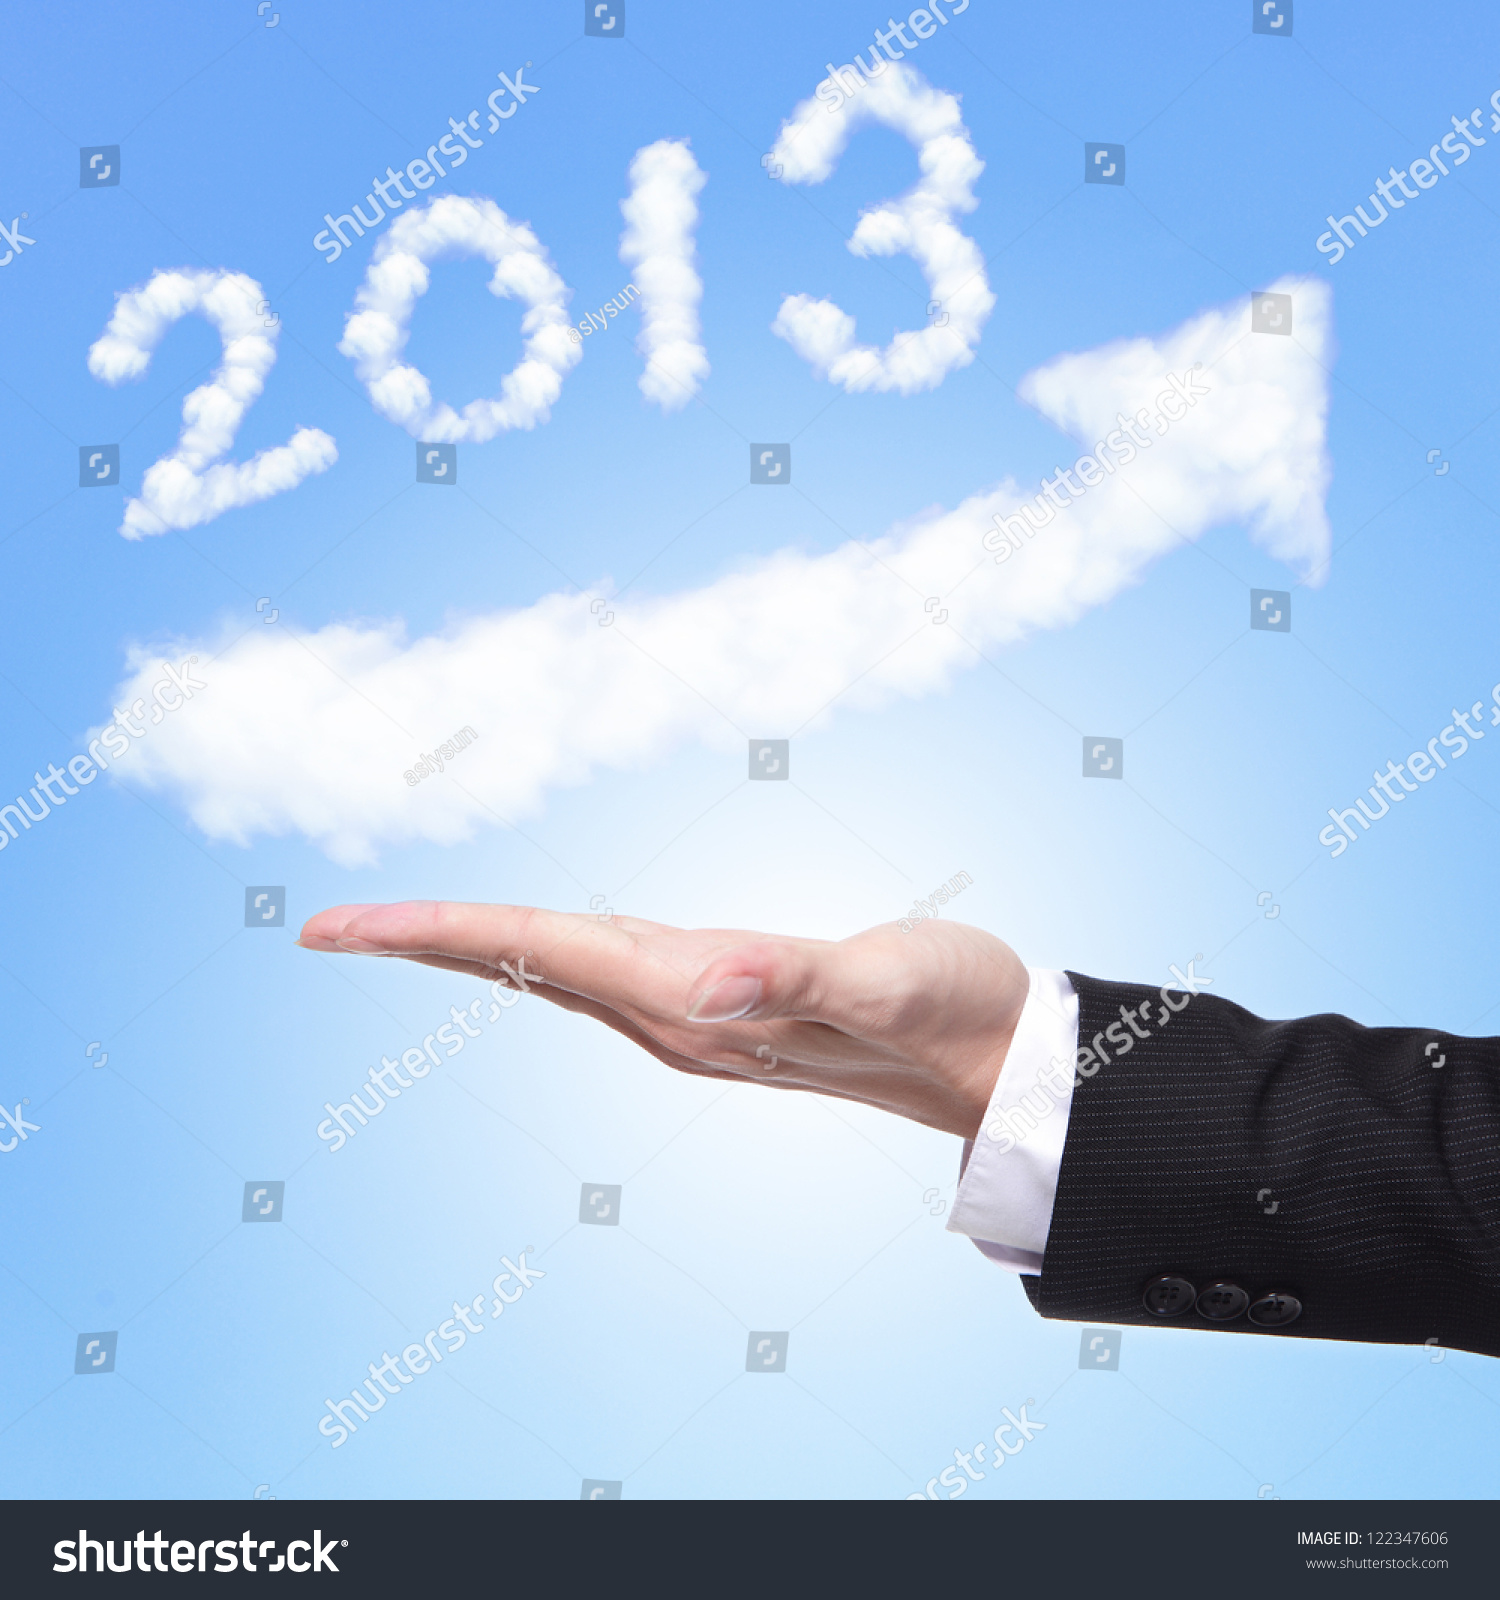 Technology Management Image: Hand Of Business Man Holding Happy New Year 2013 (White